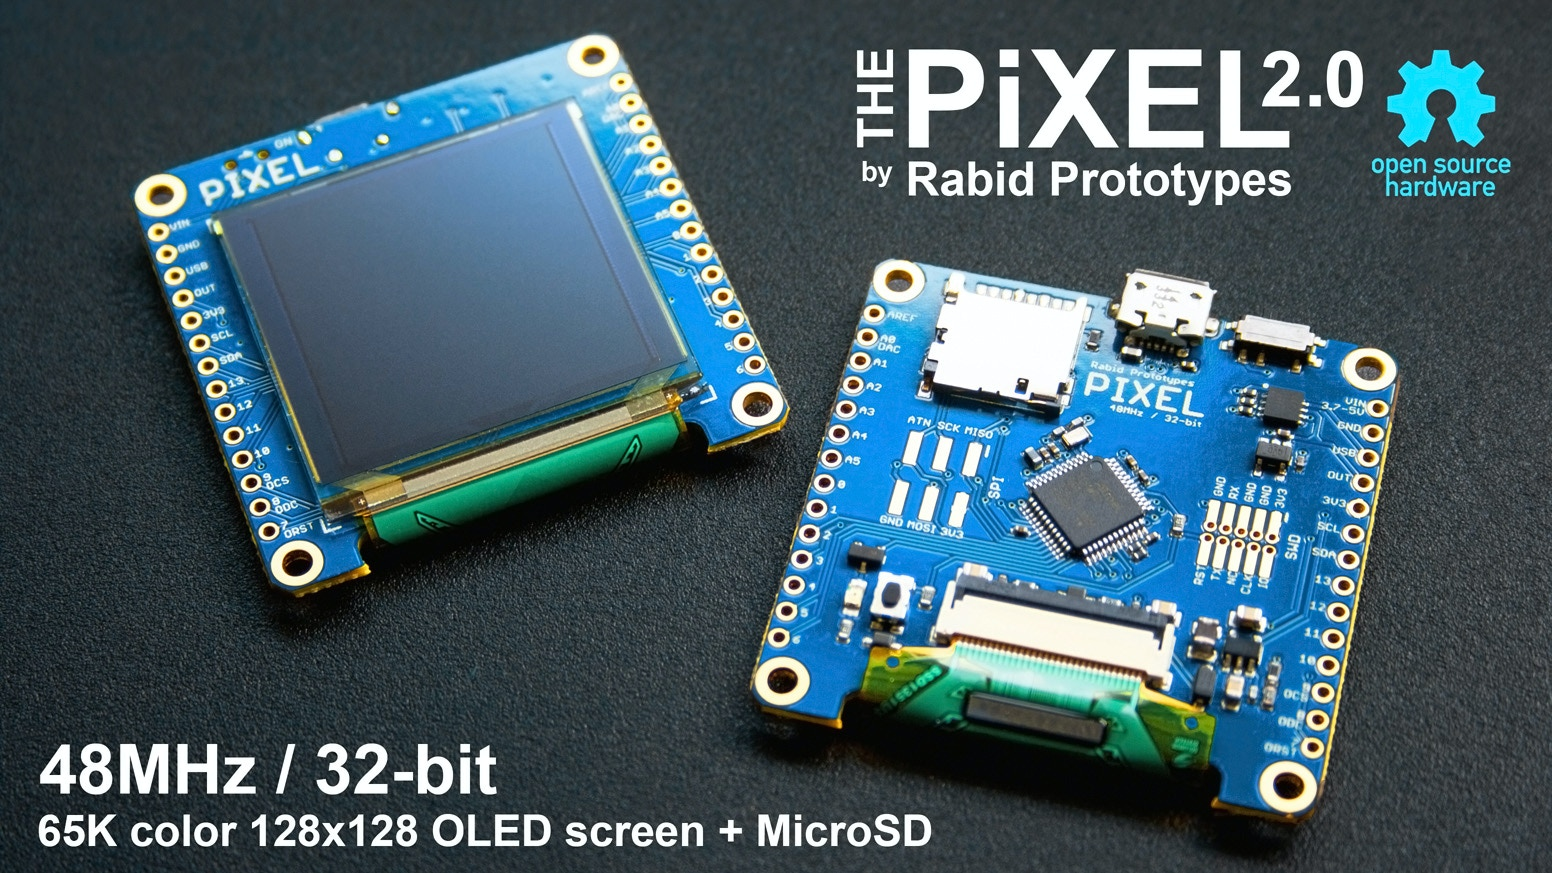 The Pixel combines a 32-bit 48MHz ARM Cortex M0+ microcontroller w/ a color OLED display and MicroSD!